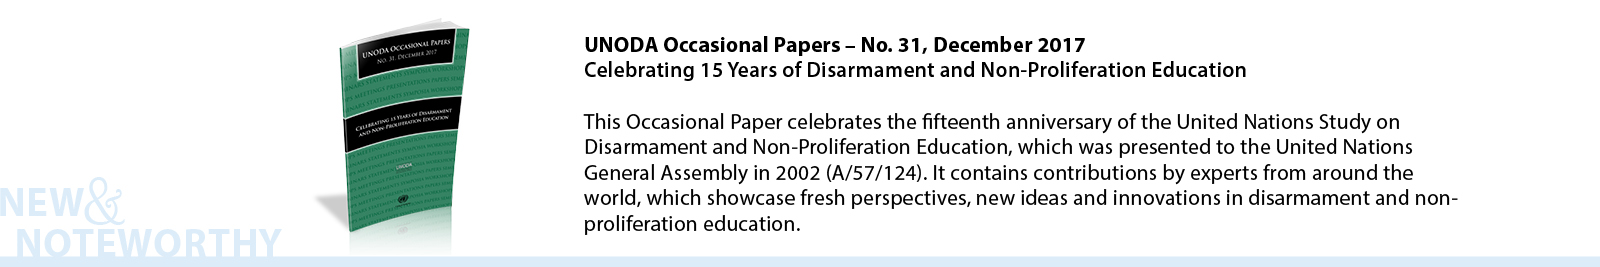 This edition of the Occasional Paper celebrates the fifteenth anniversary of the United Nations Study on Disarmament and Non-Proliferation Education, which was presented to the United Nations General Assembly in 2002 (A/57/124). It contains contributions by experts from around the world which showcase fresh perspectives, new ideas and innovations in disarmament and non-proliferation education.